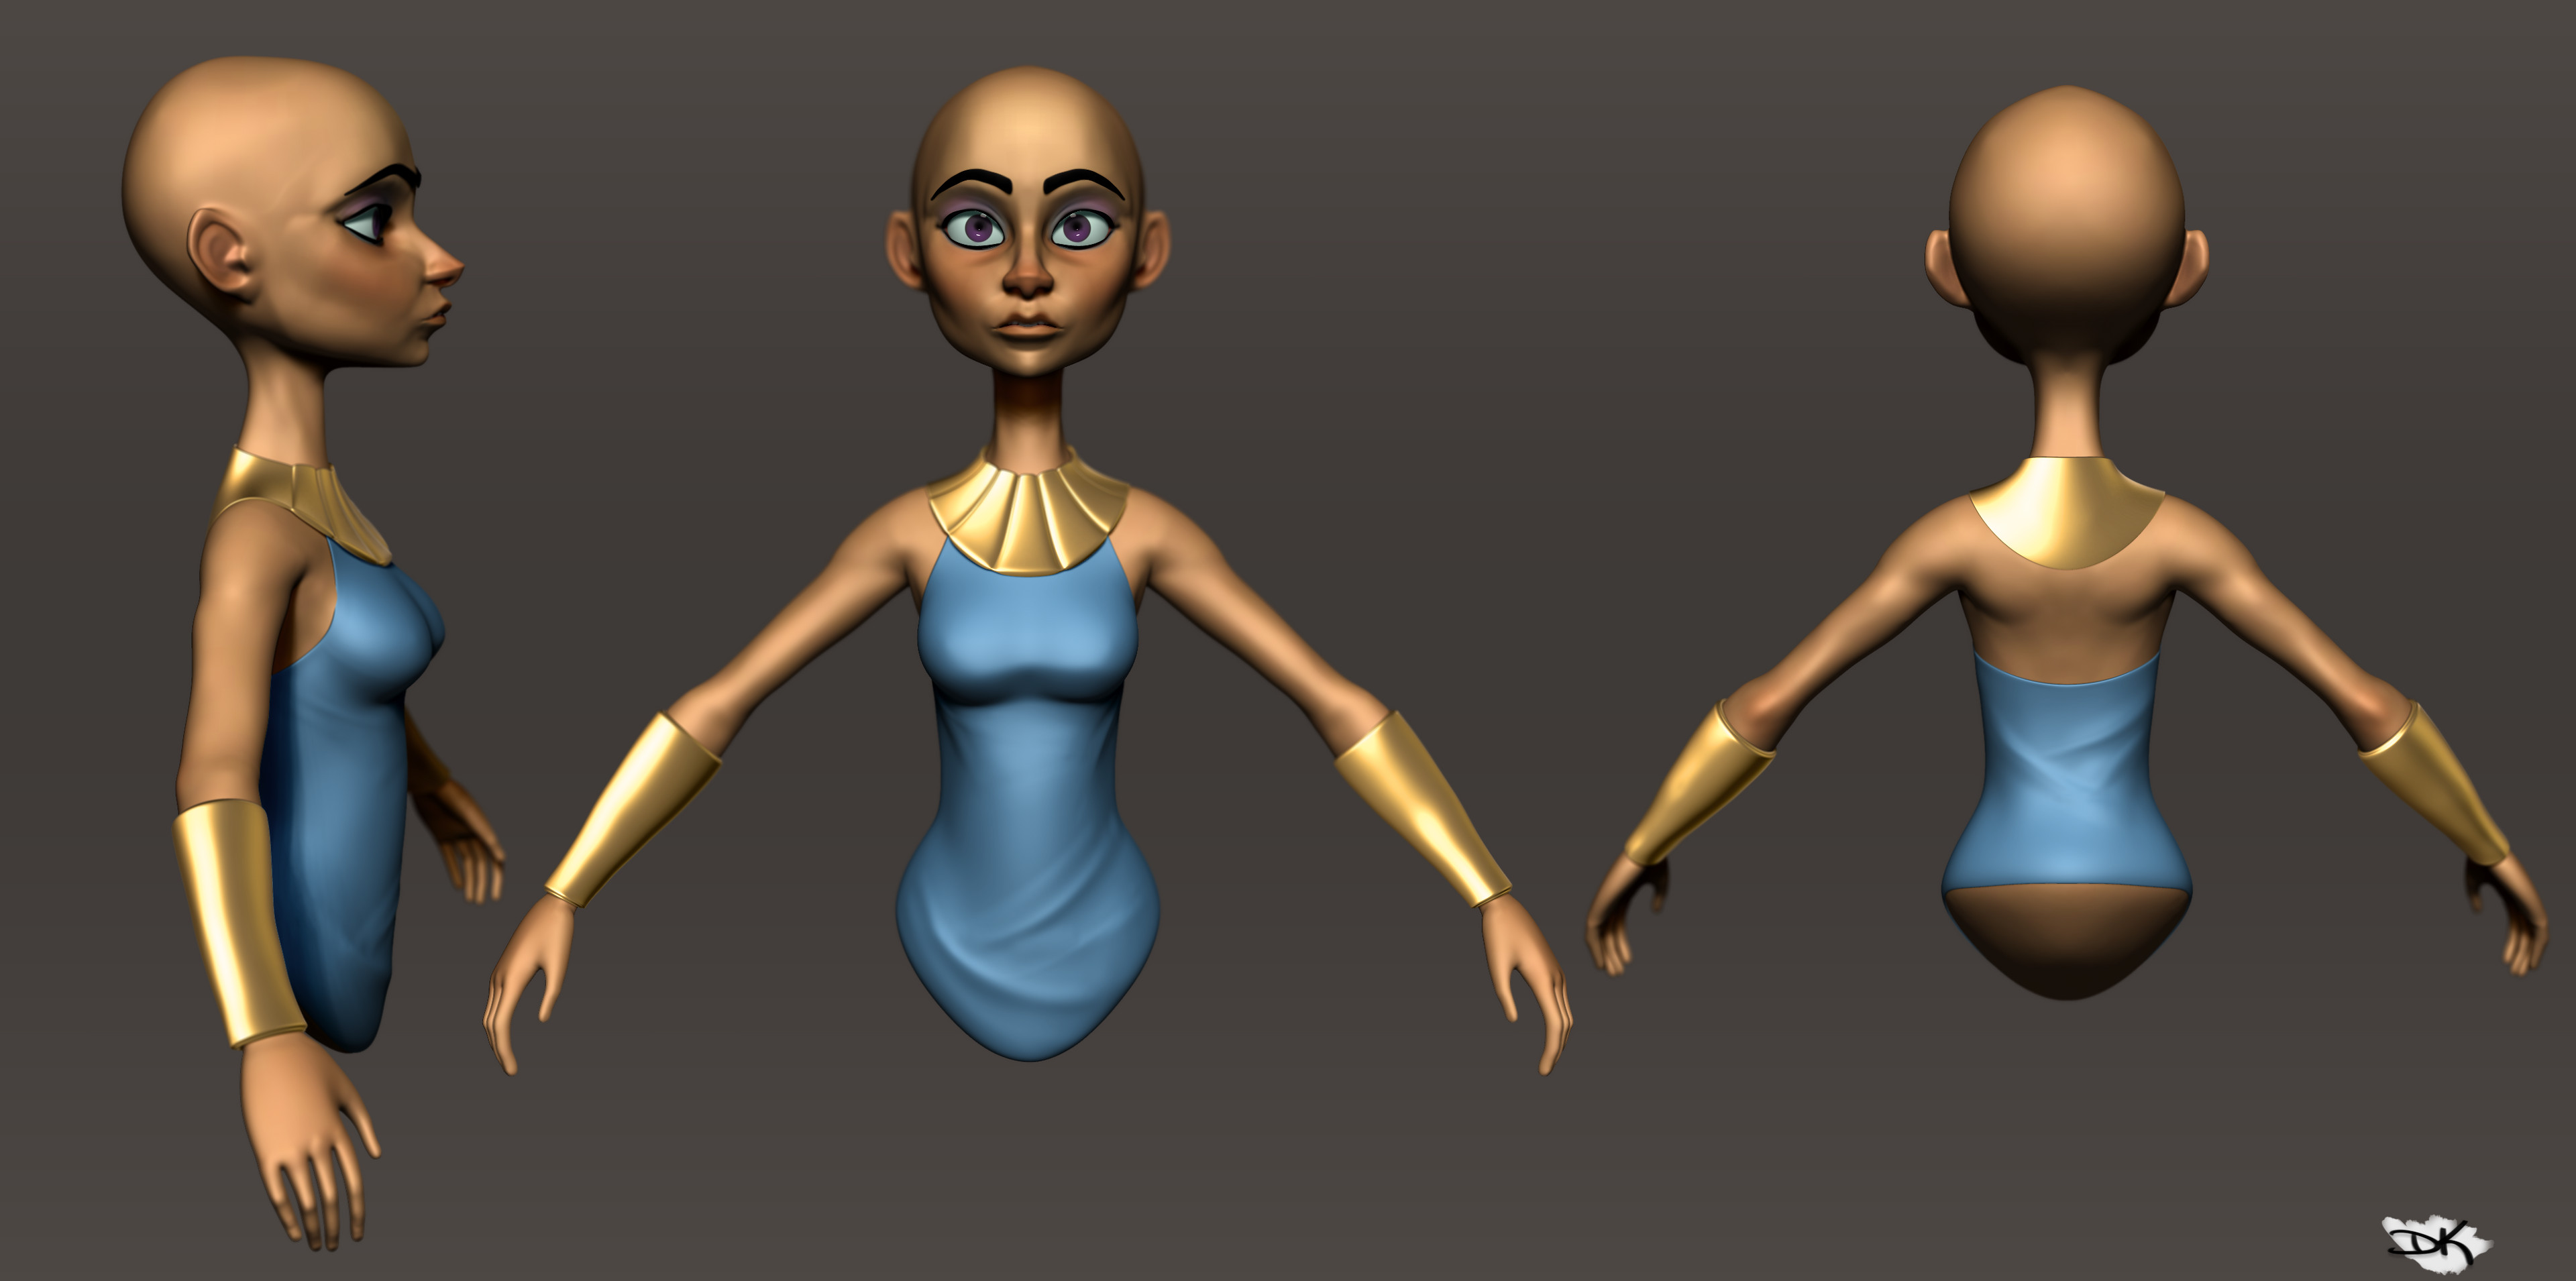 Zbrush BPR, nothing fancy here